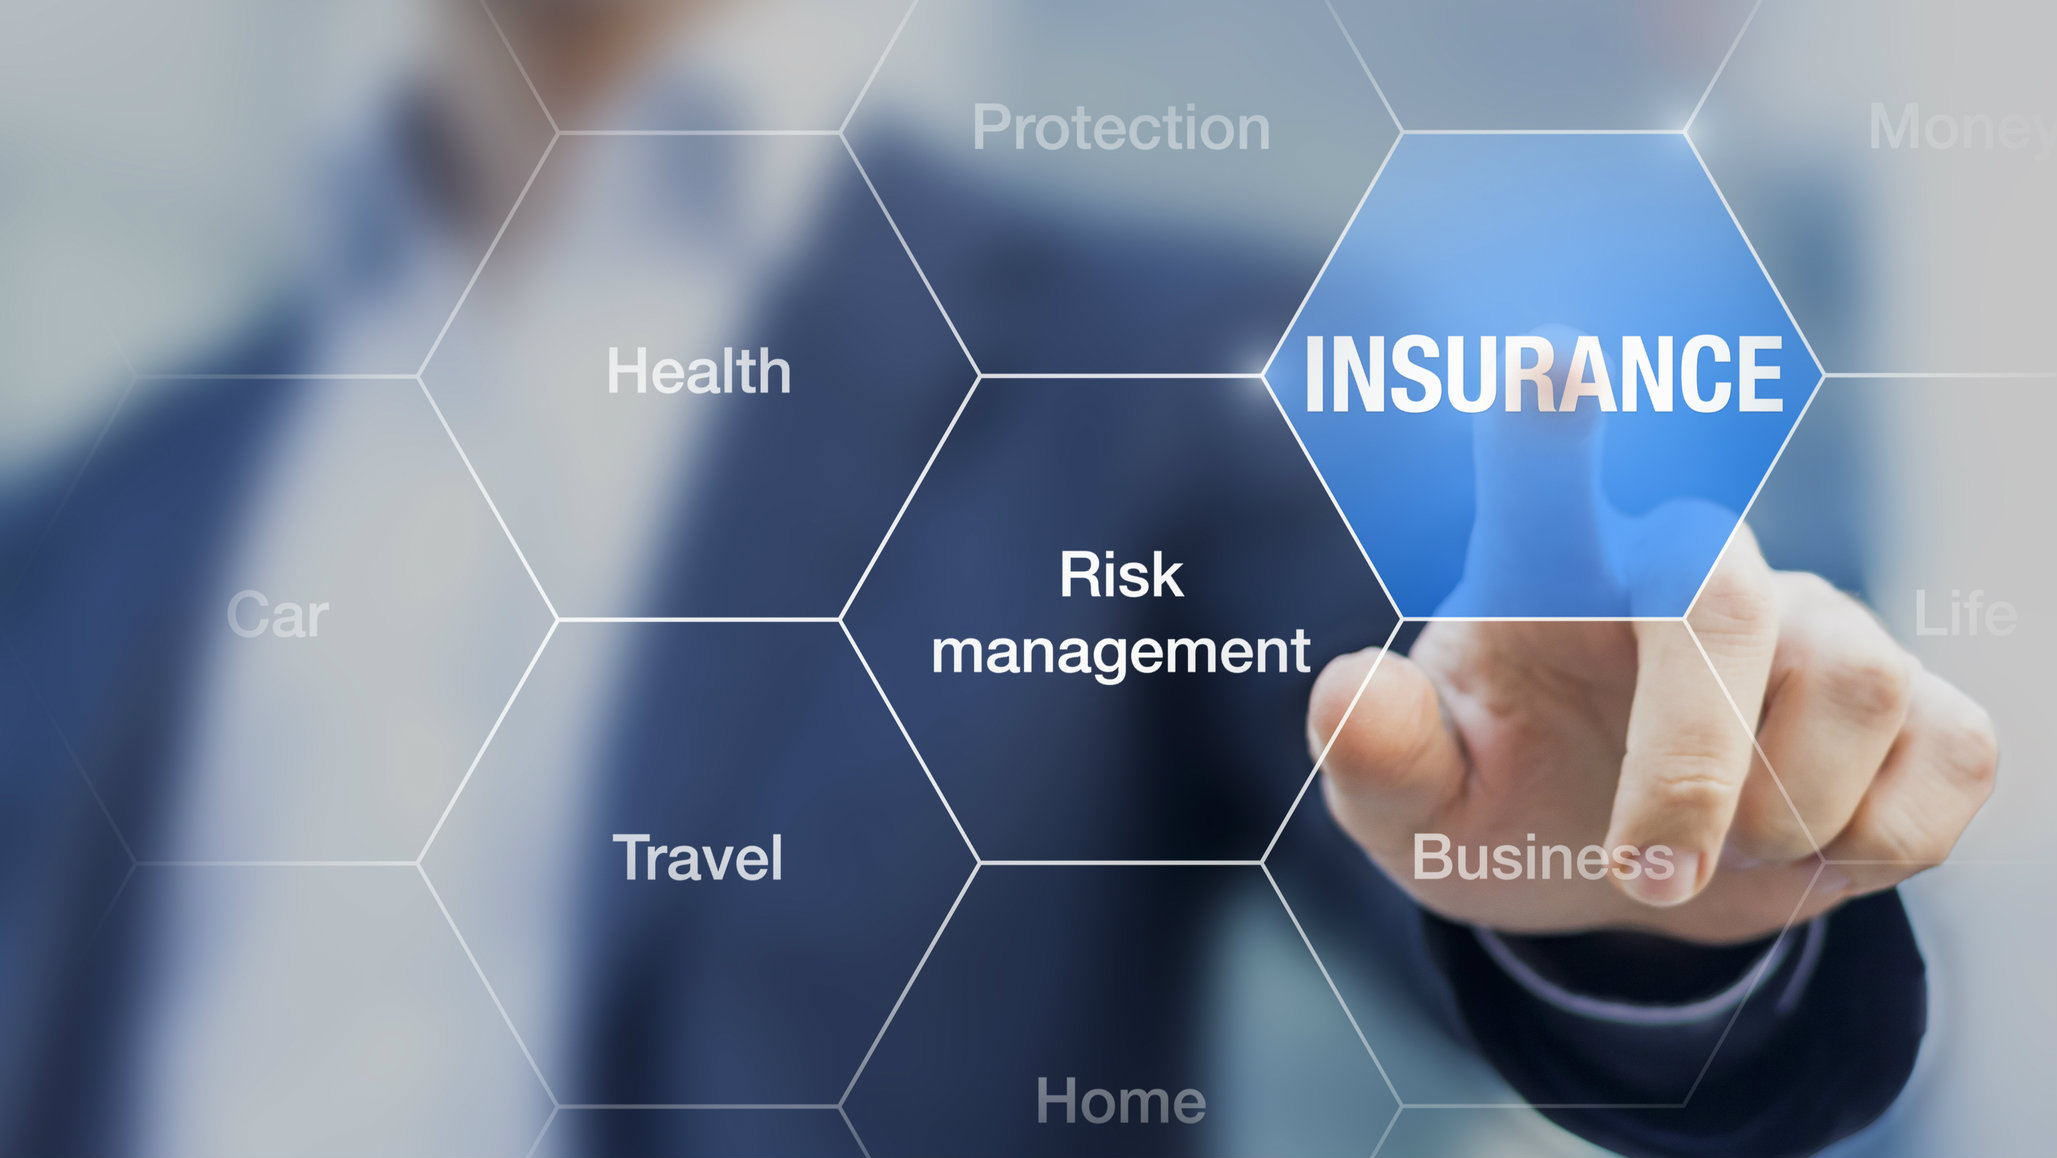 How Can Insurance Help You When Disaster And Accident Happens?